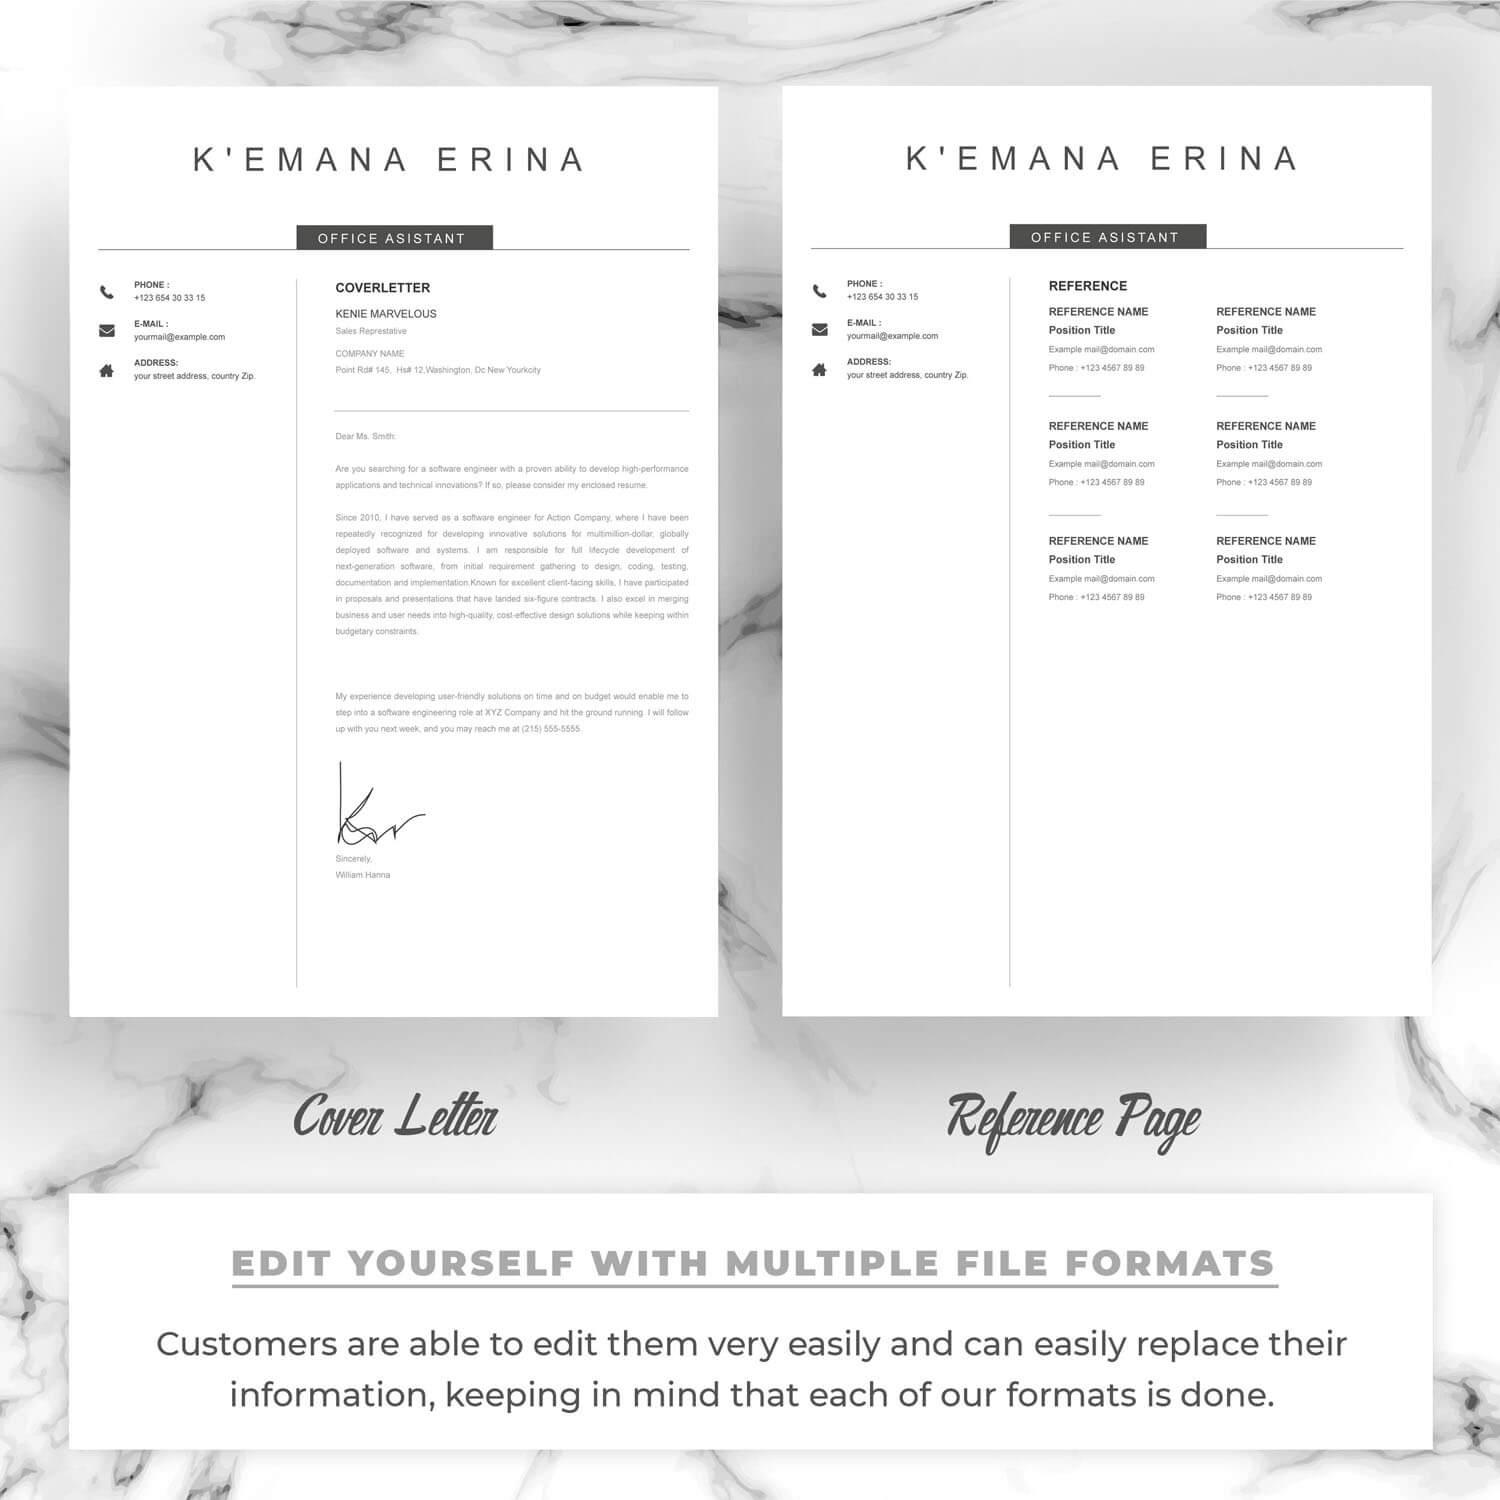 Shown here are two additional pages - a cover letter and references from previous jobs.